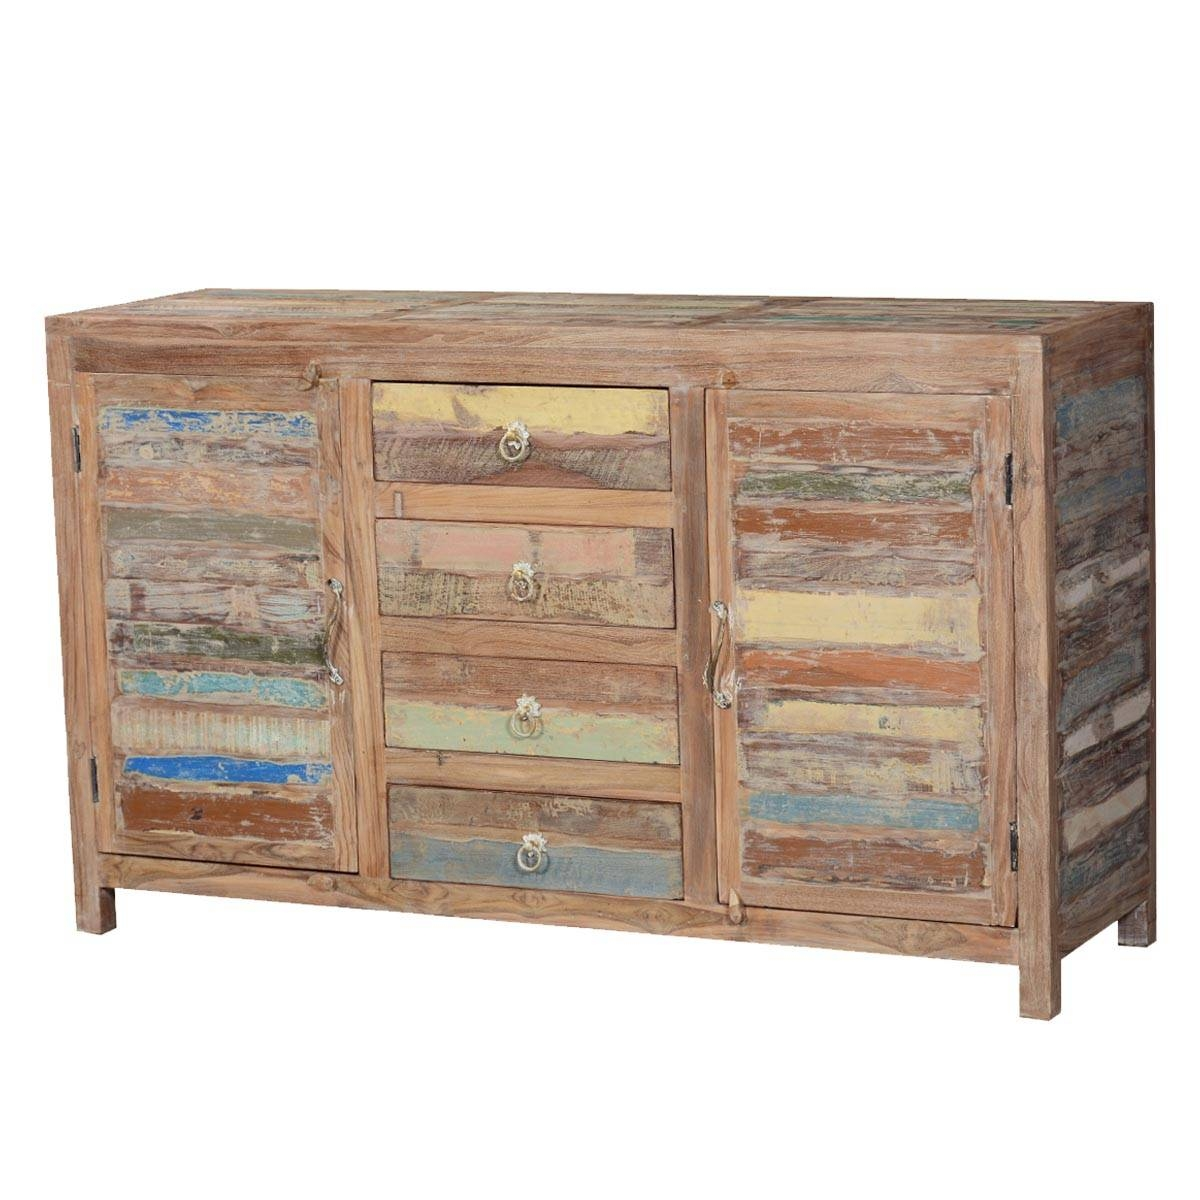 Fe Rustic Sunset Reclaimed Wood Buffet Sideboard Cabinet Regarding Santa Fe Sideboards (#5 of 15)